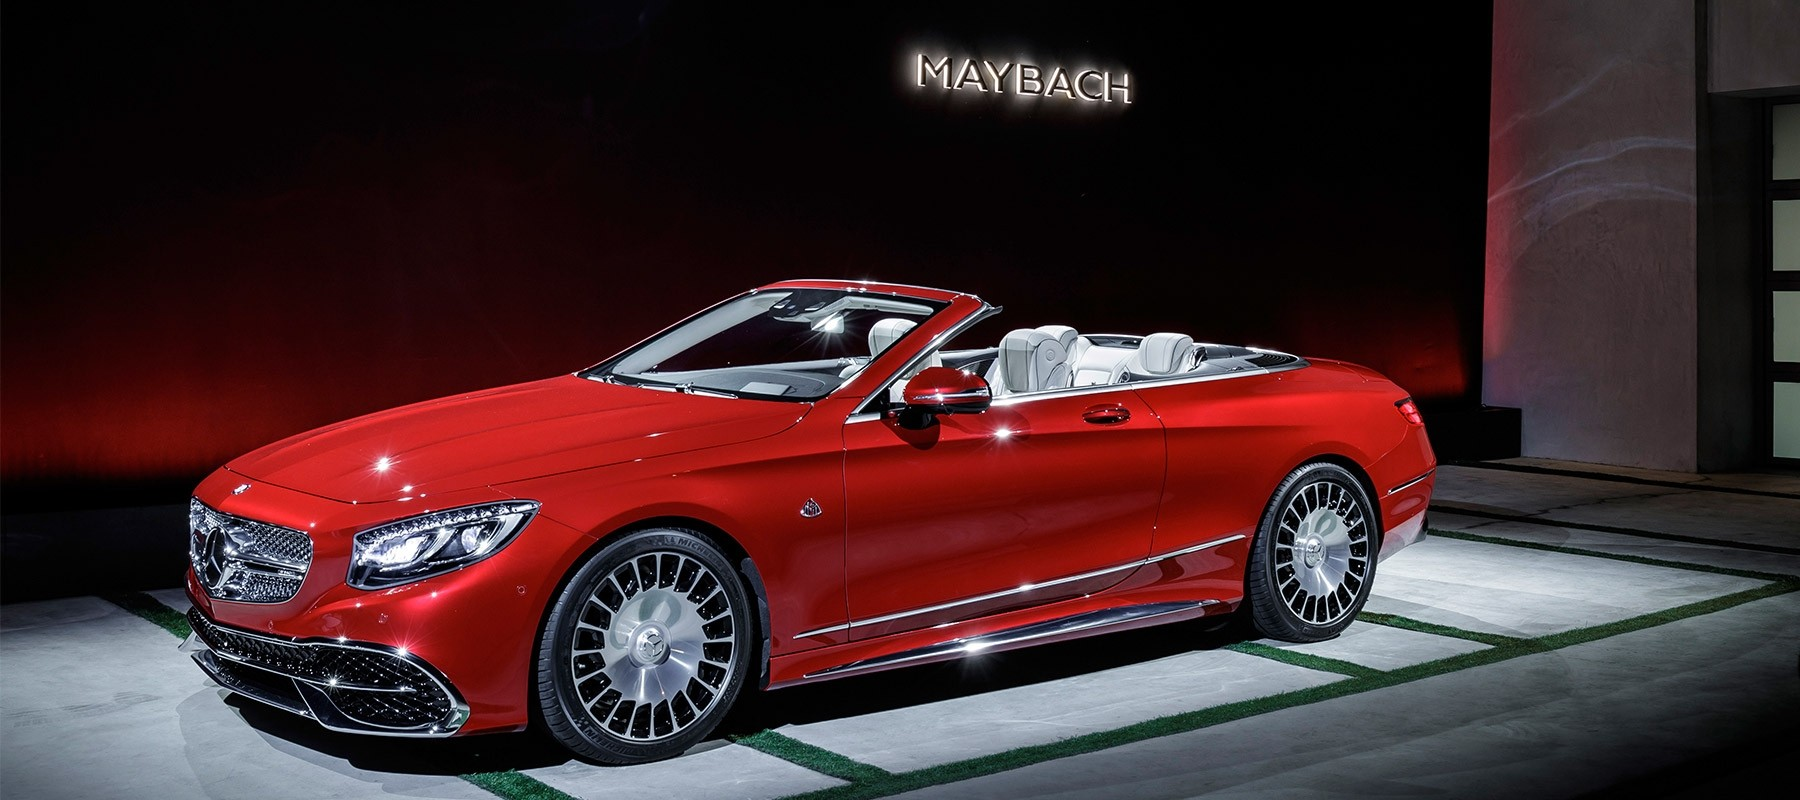 Mercedes Maybach S 650 Cabriolet 1 Of 300 Limited Edition